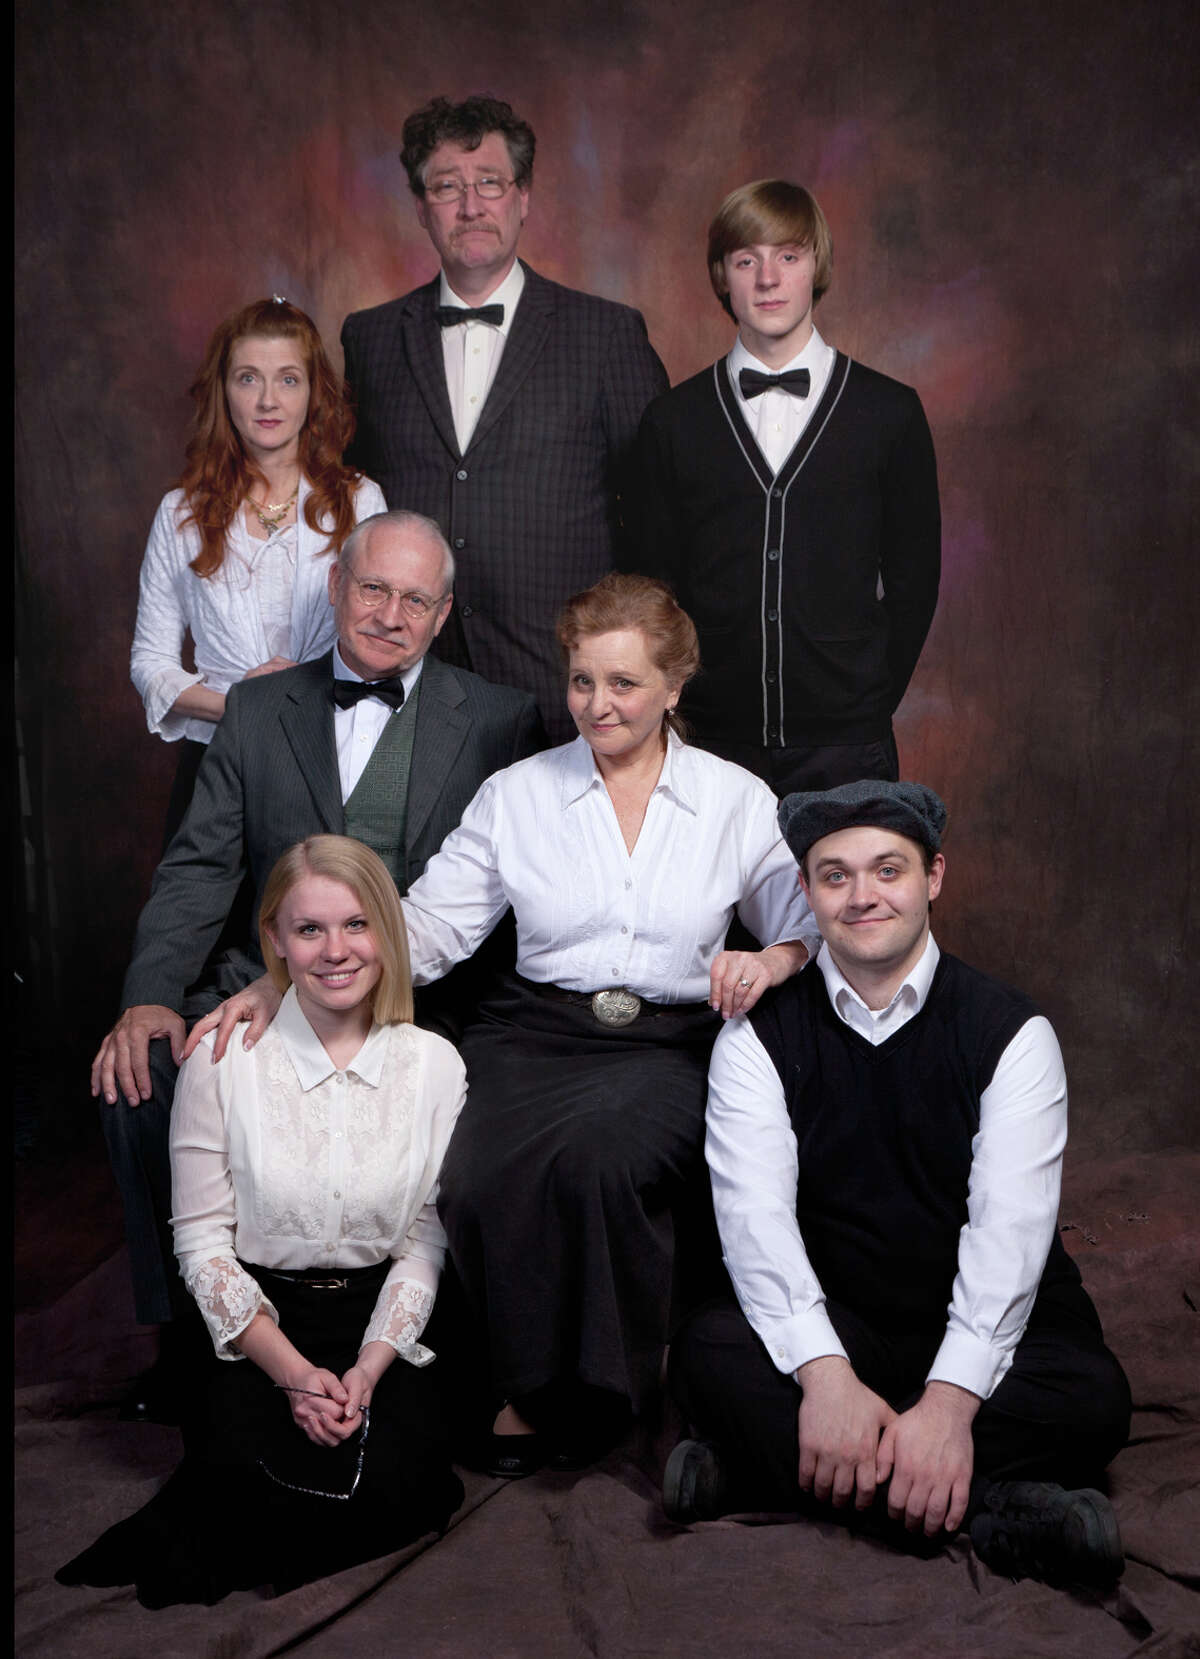 """The Miller clan from Eugene O'Neill's classic comedy of American family life, """"Ah, Wilderness!"""" Pictured from left to right: Top Row--Janet Hurley Kimlicko, Brian Massman, Dan Light; Second Row-- Ron Komora, Eileen Schuyler; Bottom Row--Kristyn Youngblood, Evan Jones. Theater Voices will present a staged reading of the play, directed by Carol Charniga, on Friday February 15 at 8pm; Saturday February 16 at 3 & 8pm, and Sunday February 17 at 3pm at Steamer No. 10 Theatre, 500 Western Avenue Albany, 438-5503. Admission is free. Please credit: Photo by Joe Schuyler"""